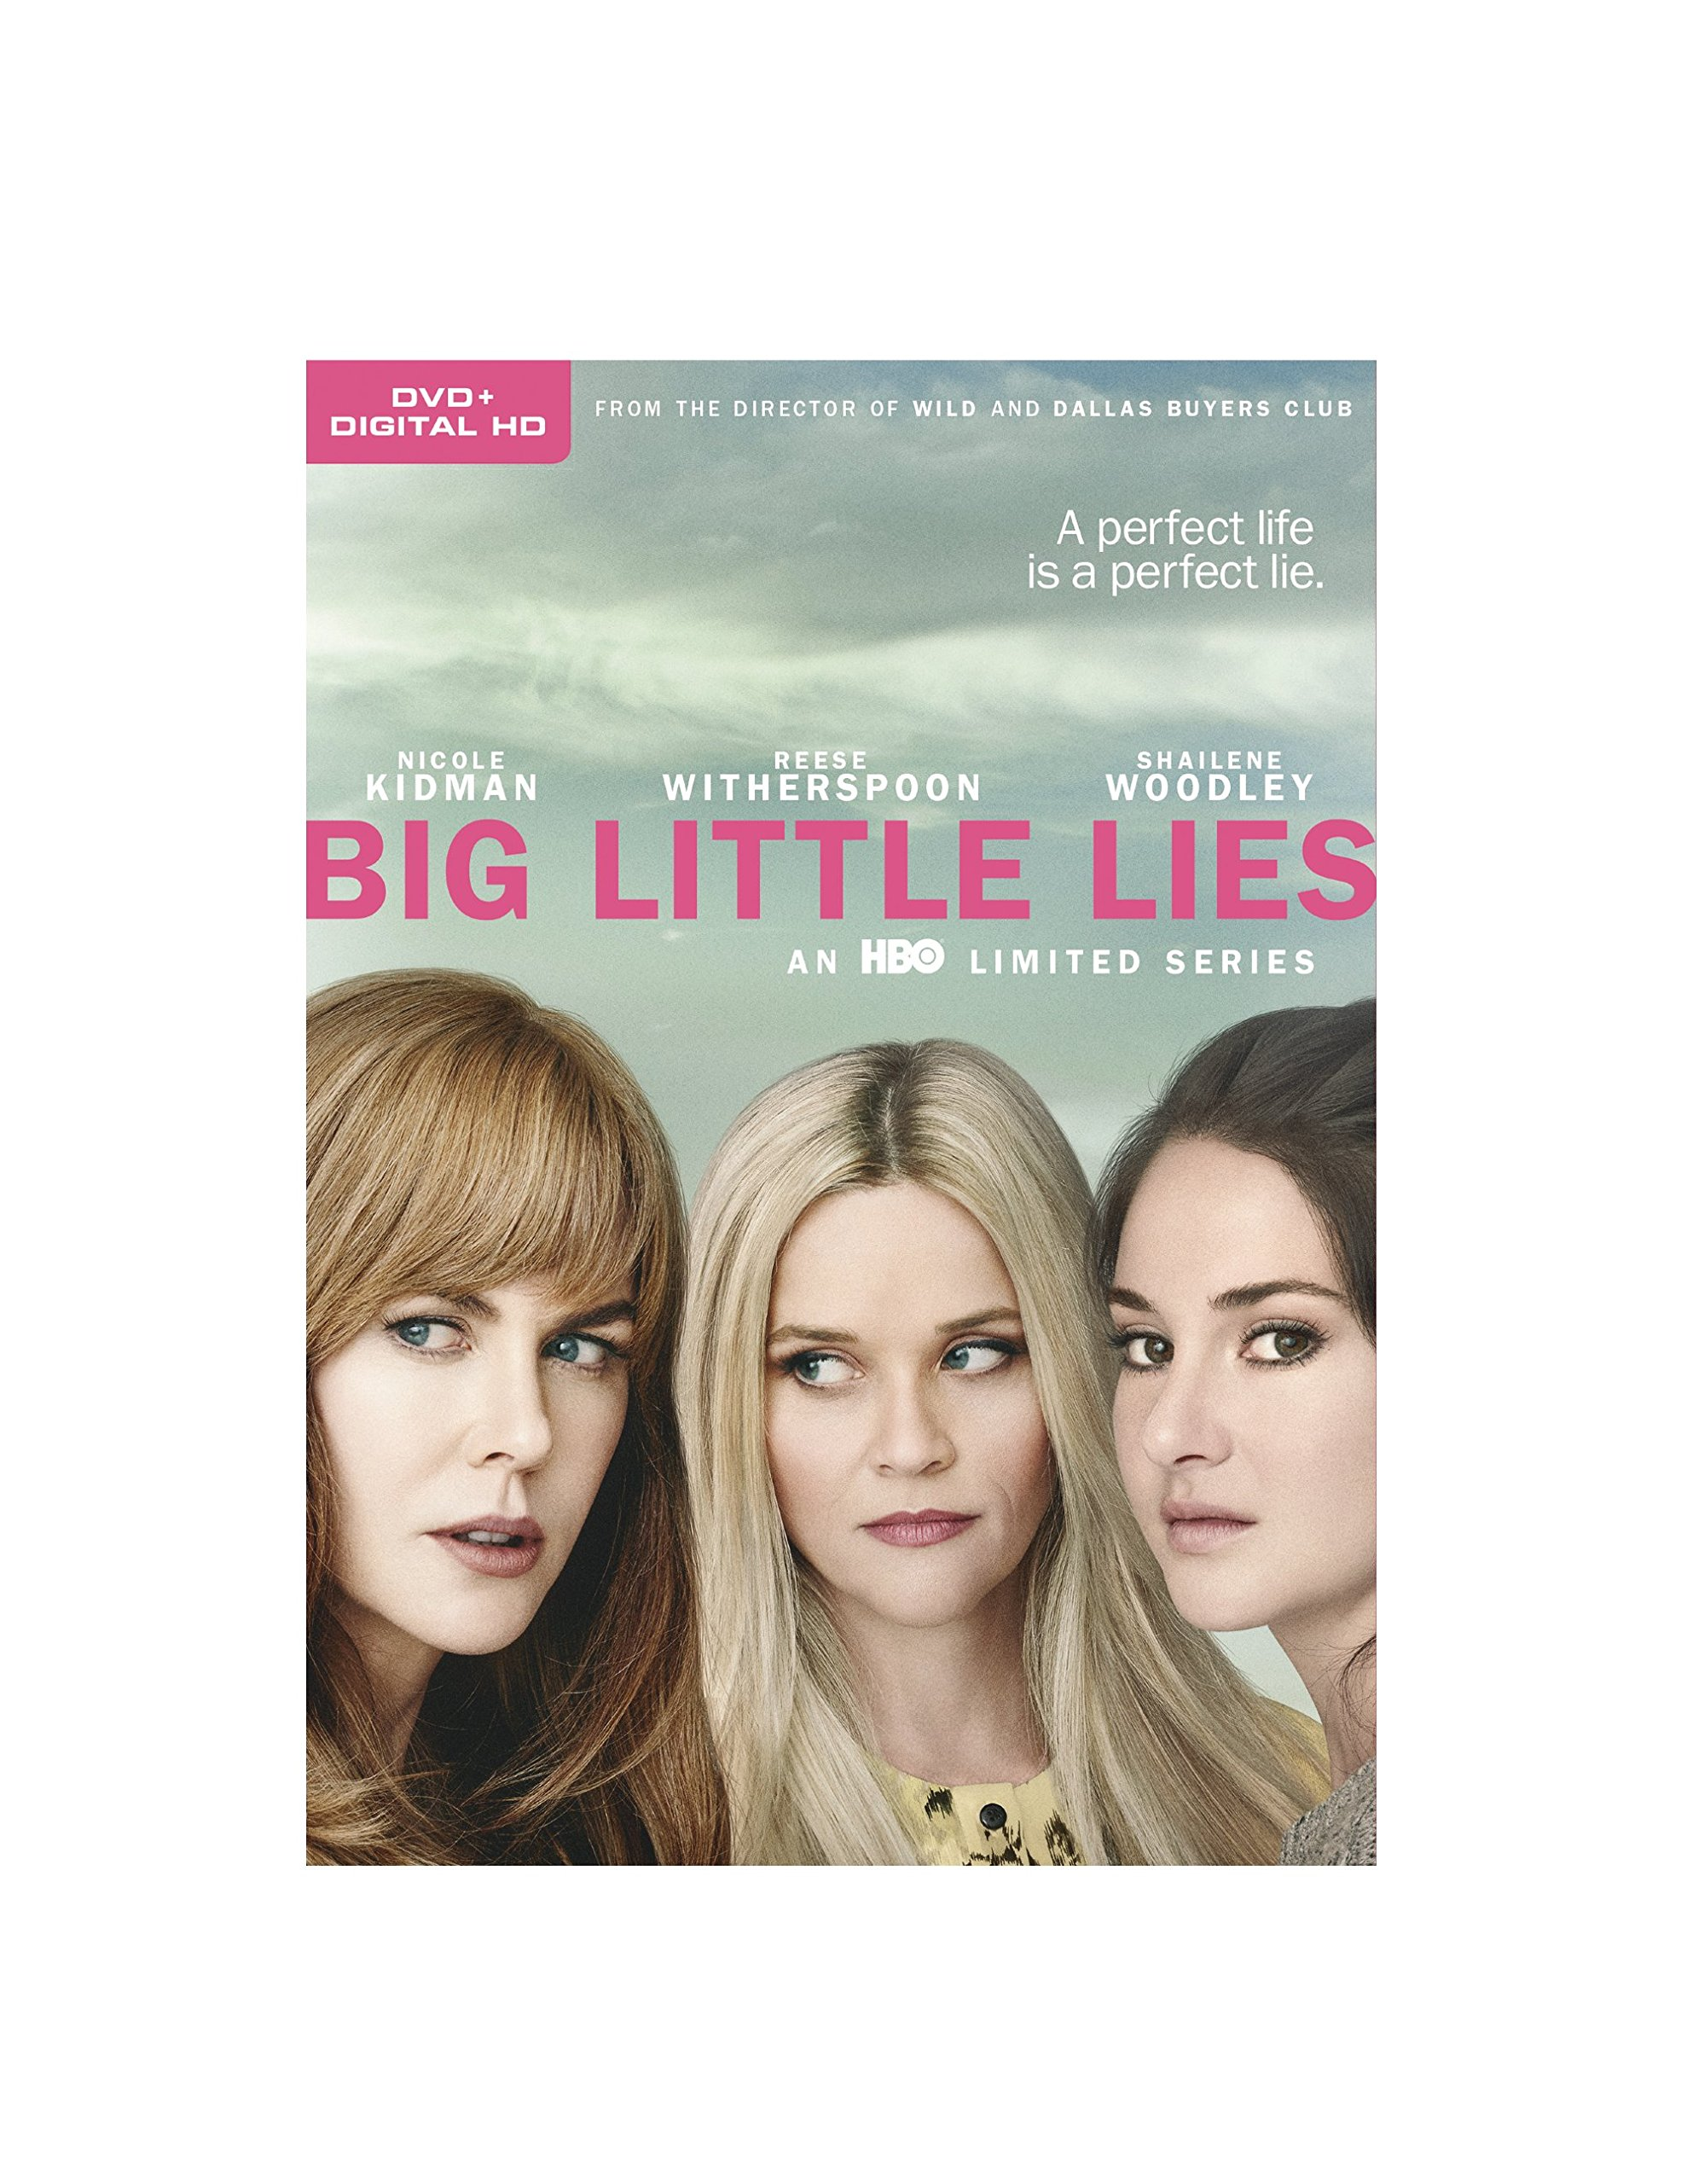 DVD : Big Little Lies: Season 1 (Full Frame, Ultraviolet Digital Copy, 3 Pack, Eco Amaray Case, Dolby)